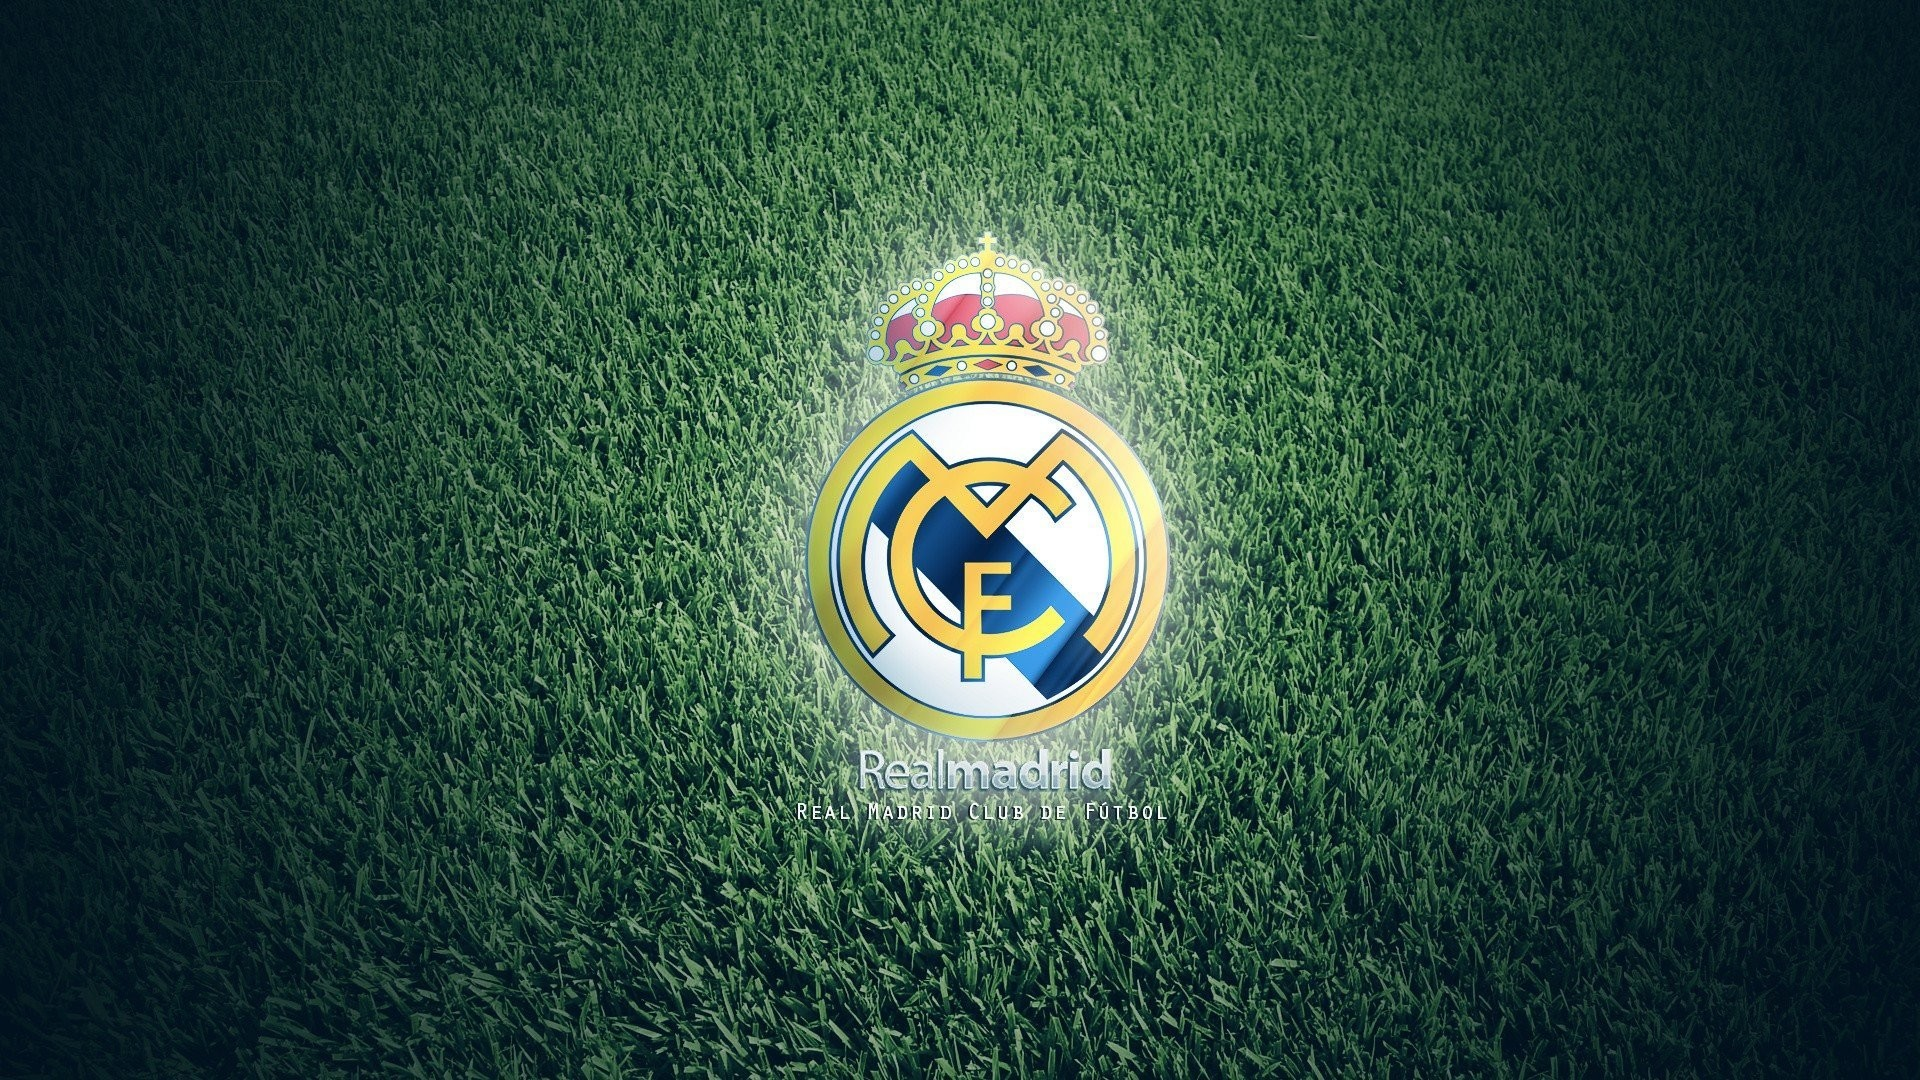 Real Madrid Logo Wallpaper Hd 2018 73 Pictures